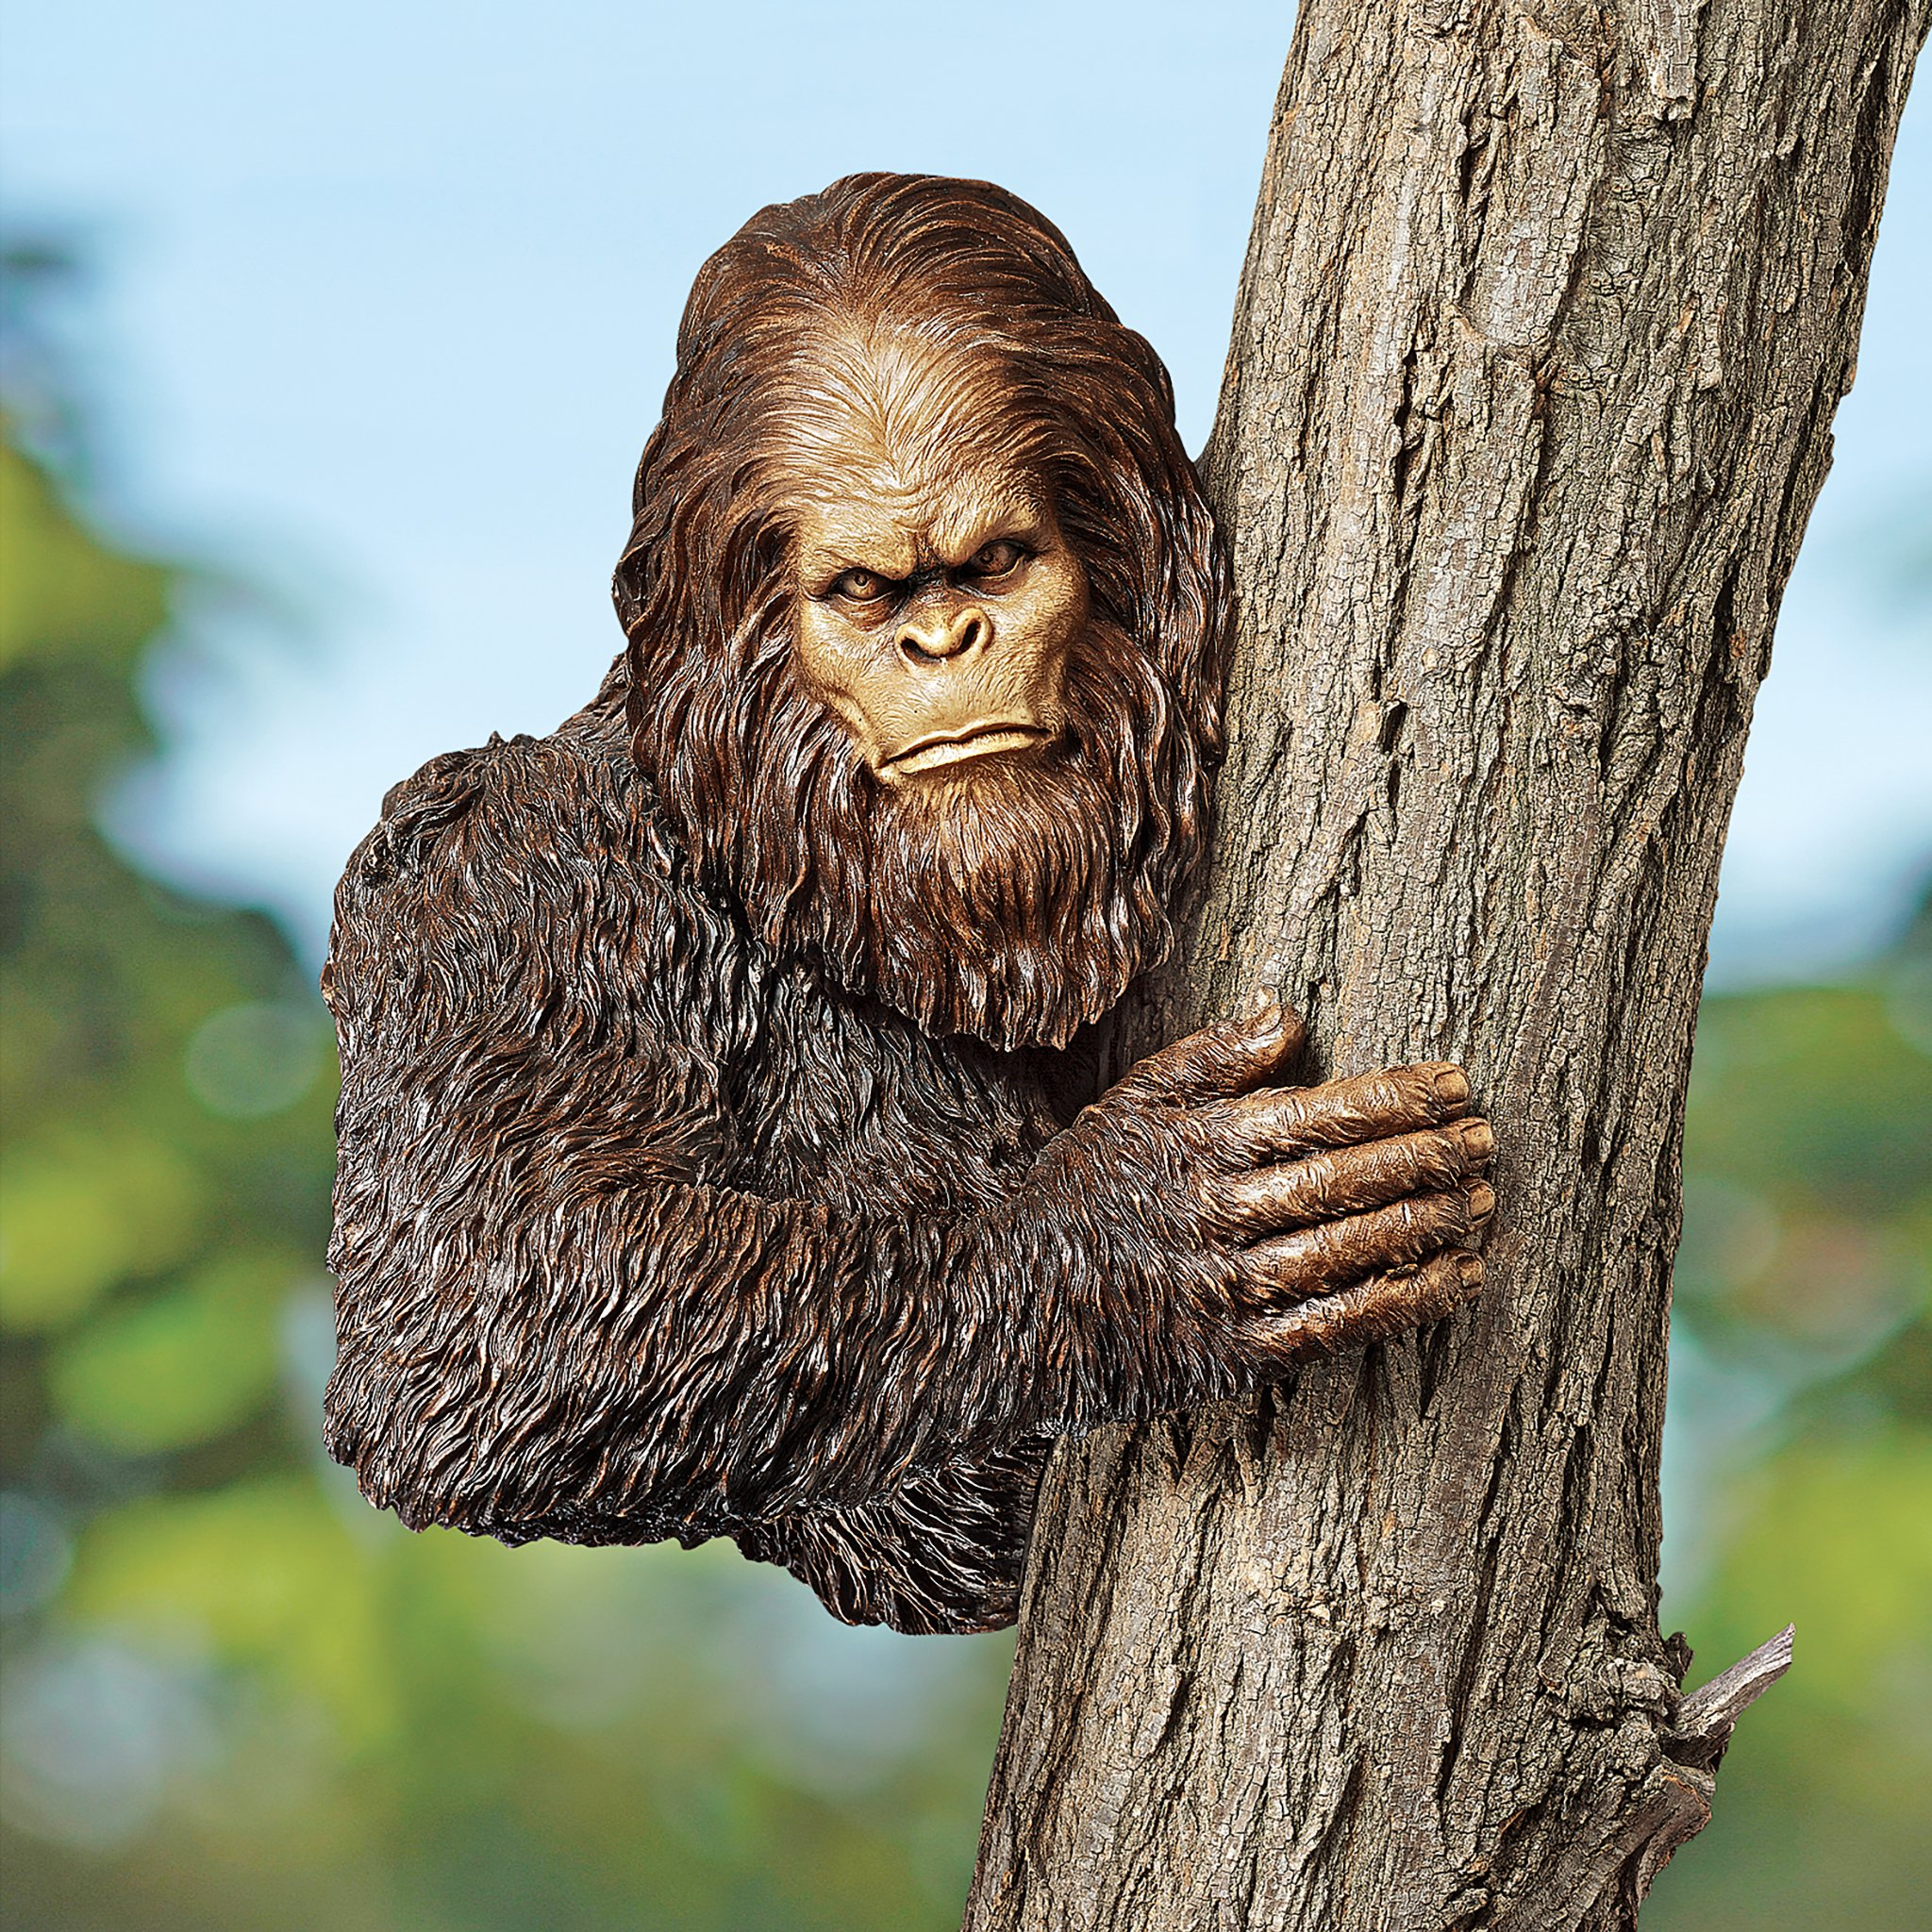 Design Toscano Bigfoot the Bashful Yeti Garden Tree Sculpture, 15 Inch, Polyresin, Full Color by Design Toscano (Image #6)